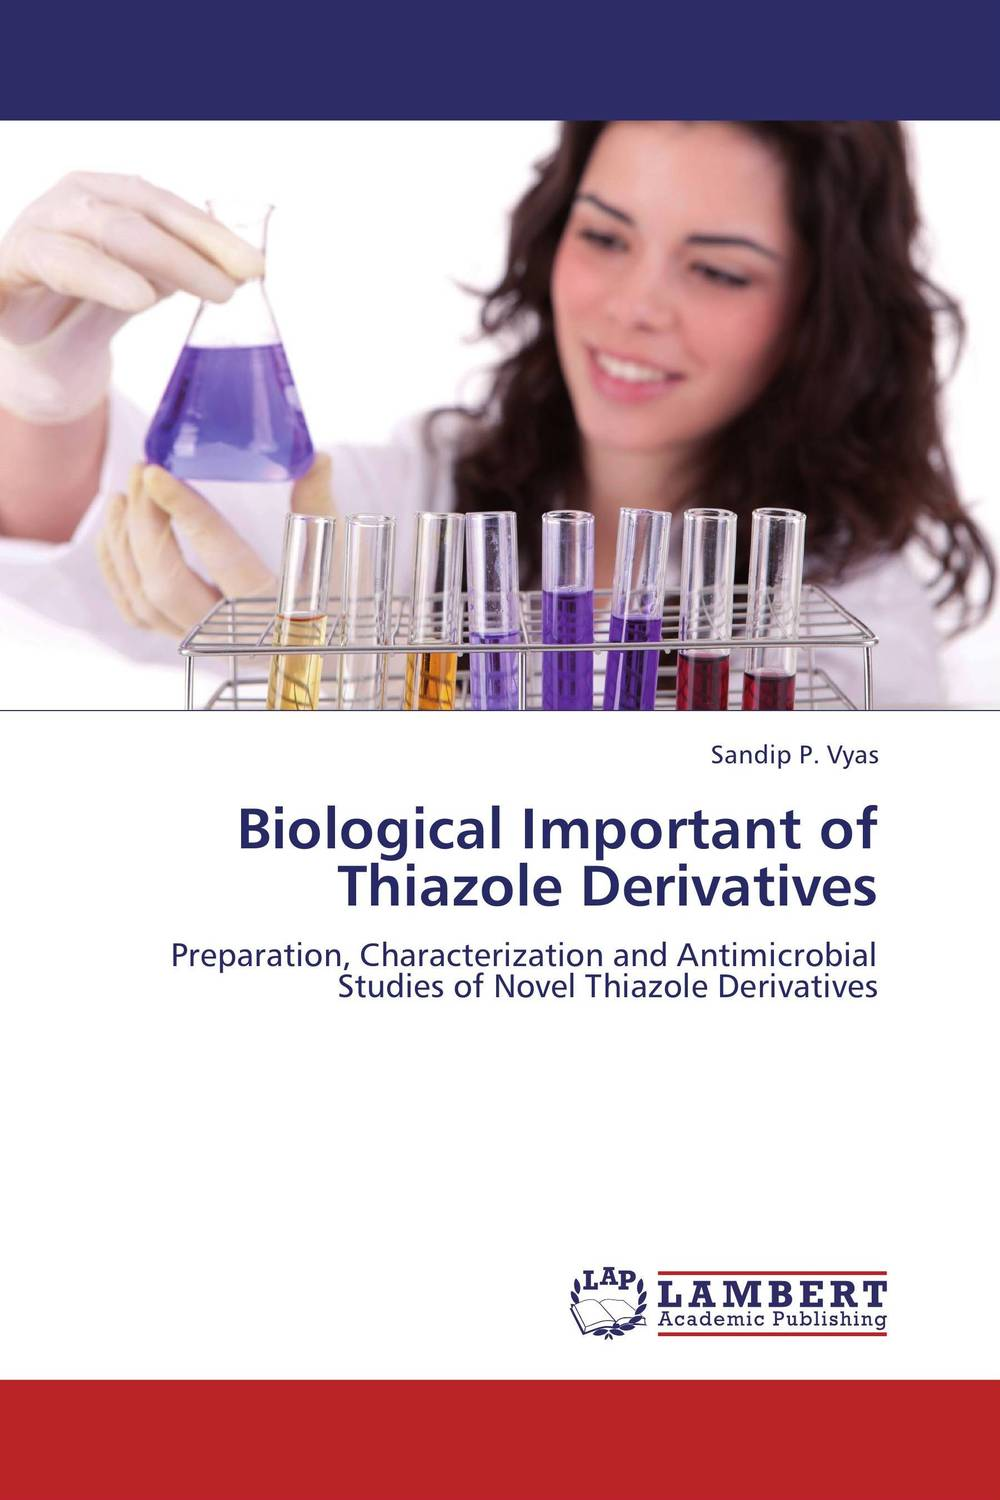 Biological Important of Thiazole Derivatives